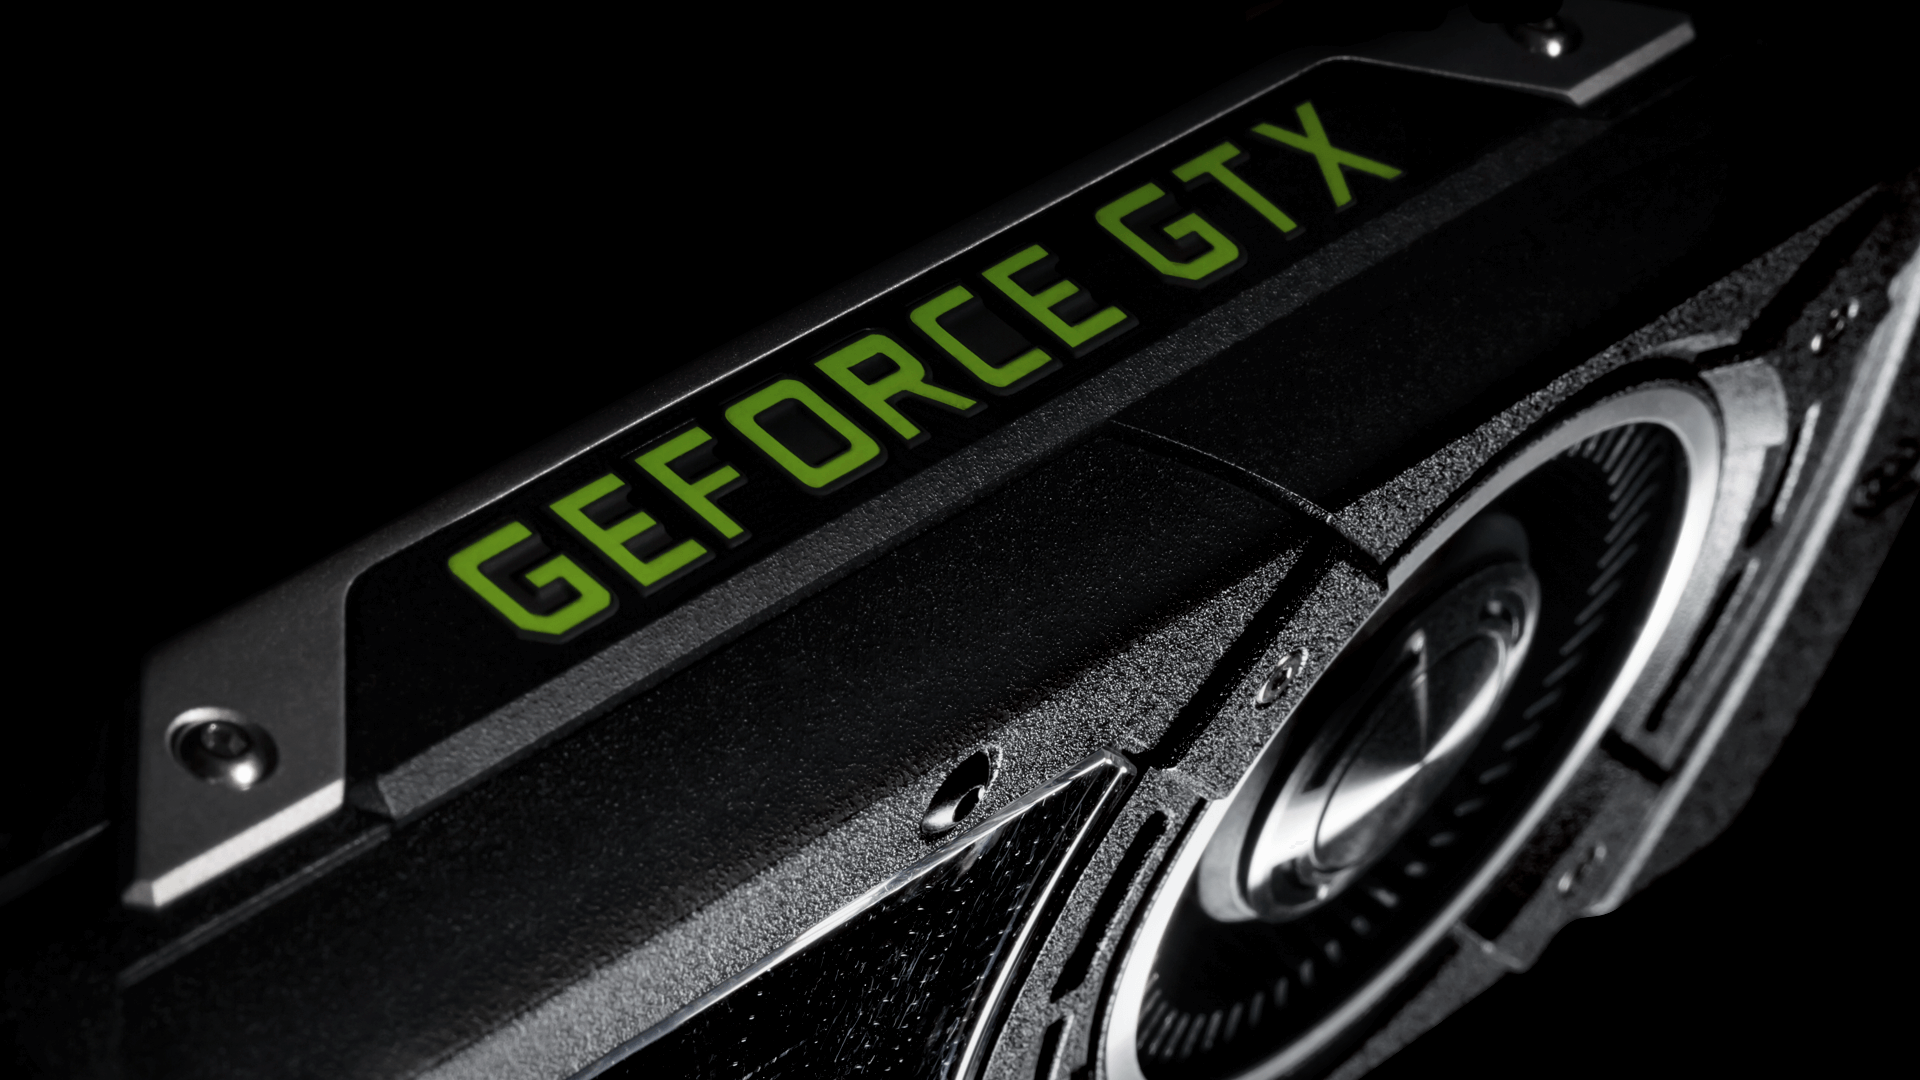 Best Low Profile GPU Reviews